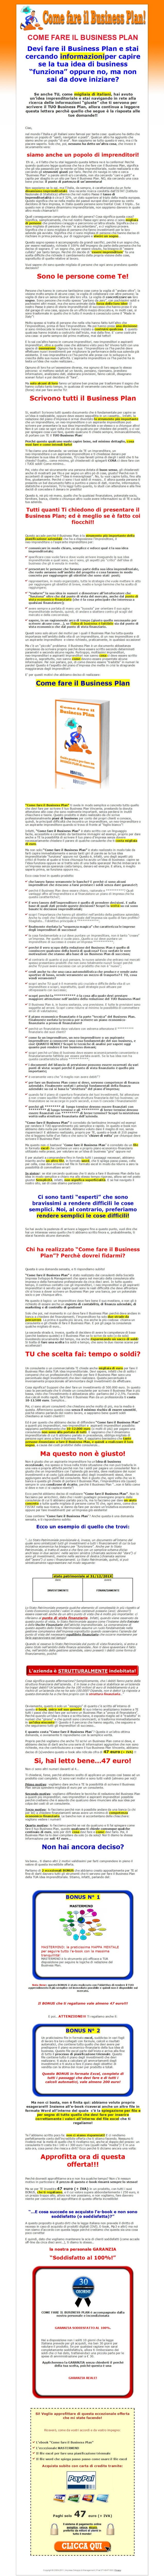 Business plan: come fare il business plan